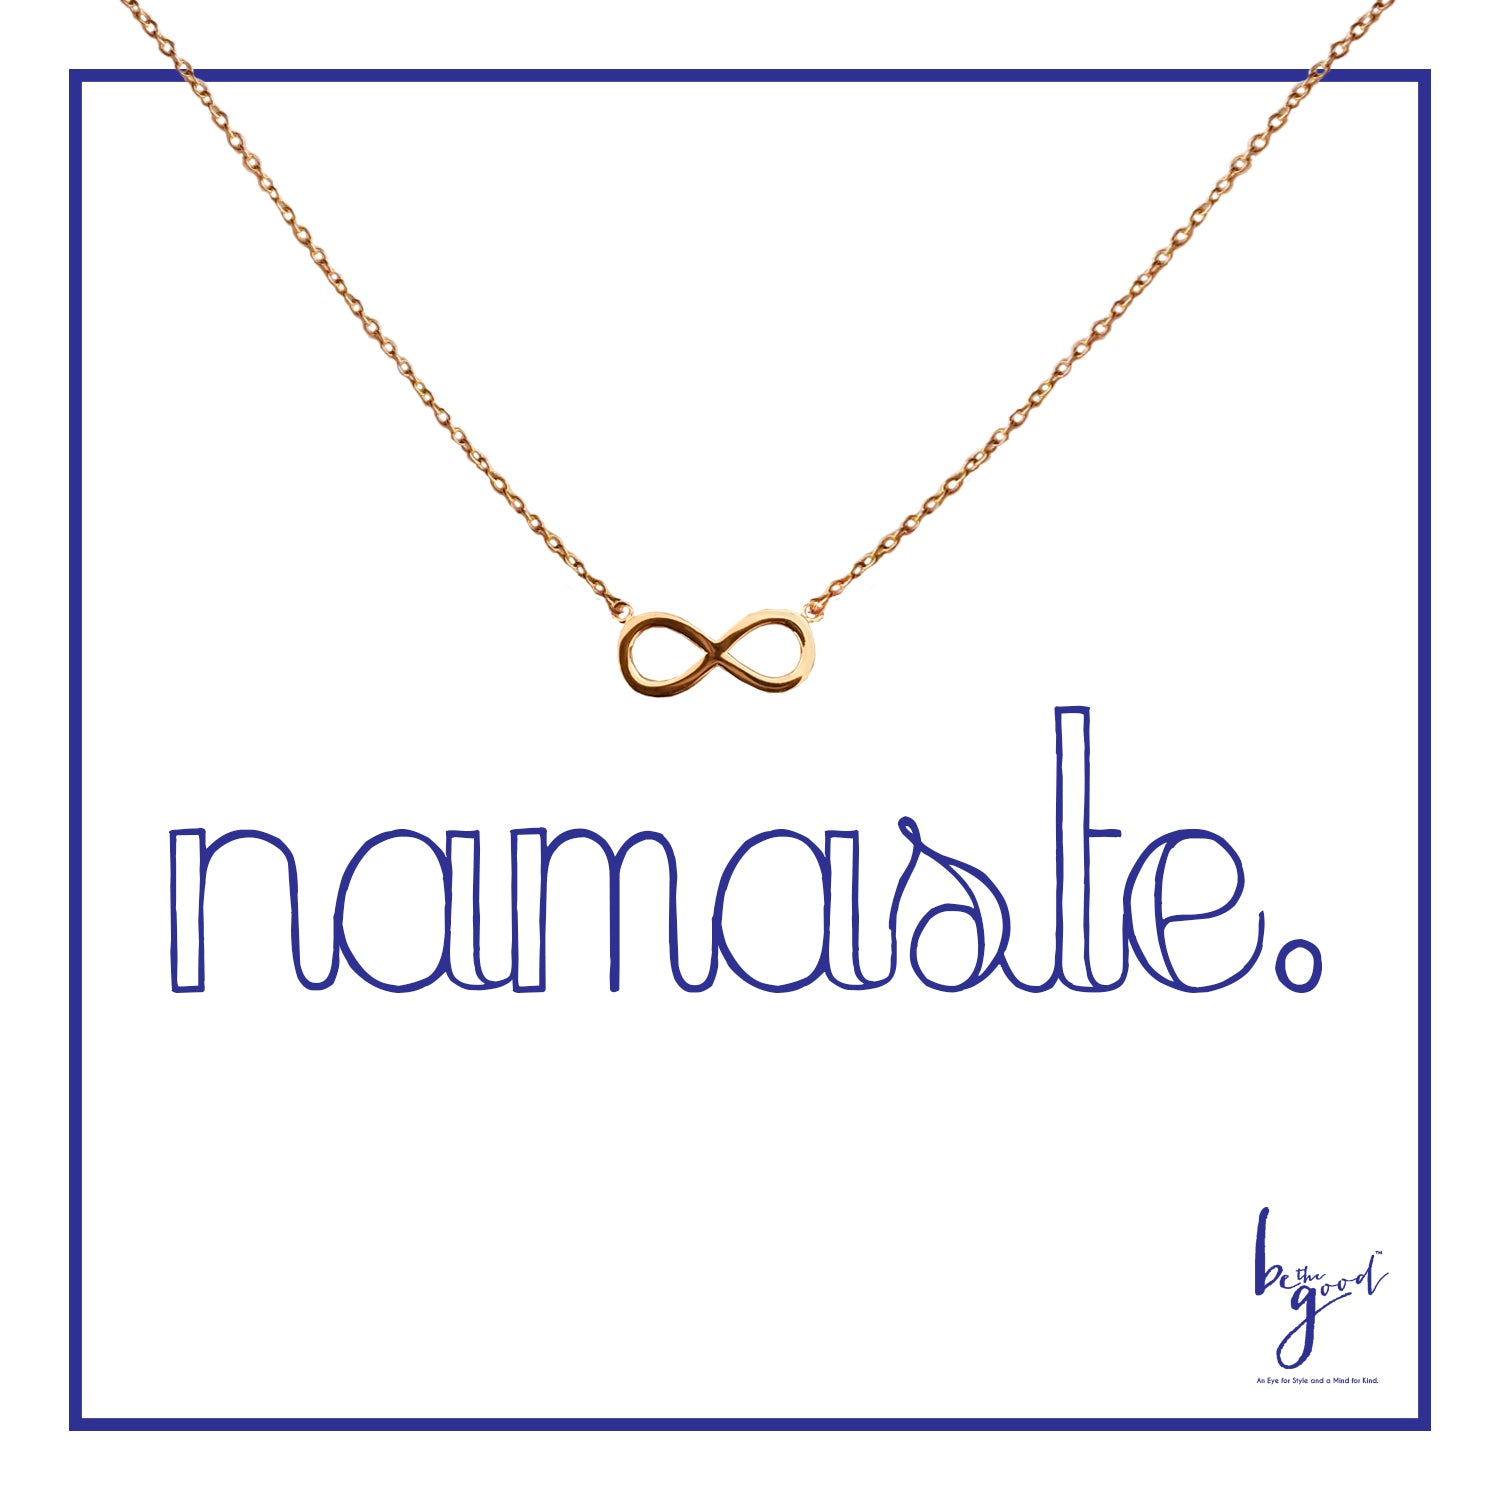 Gold infinity charm necklace on namaste card